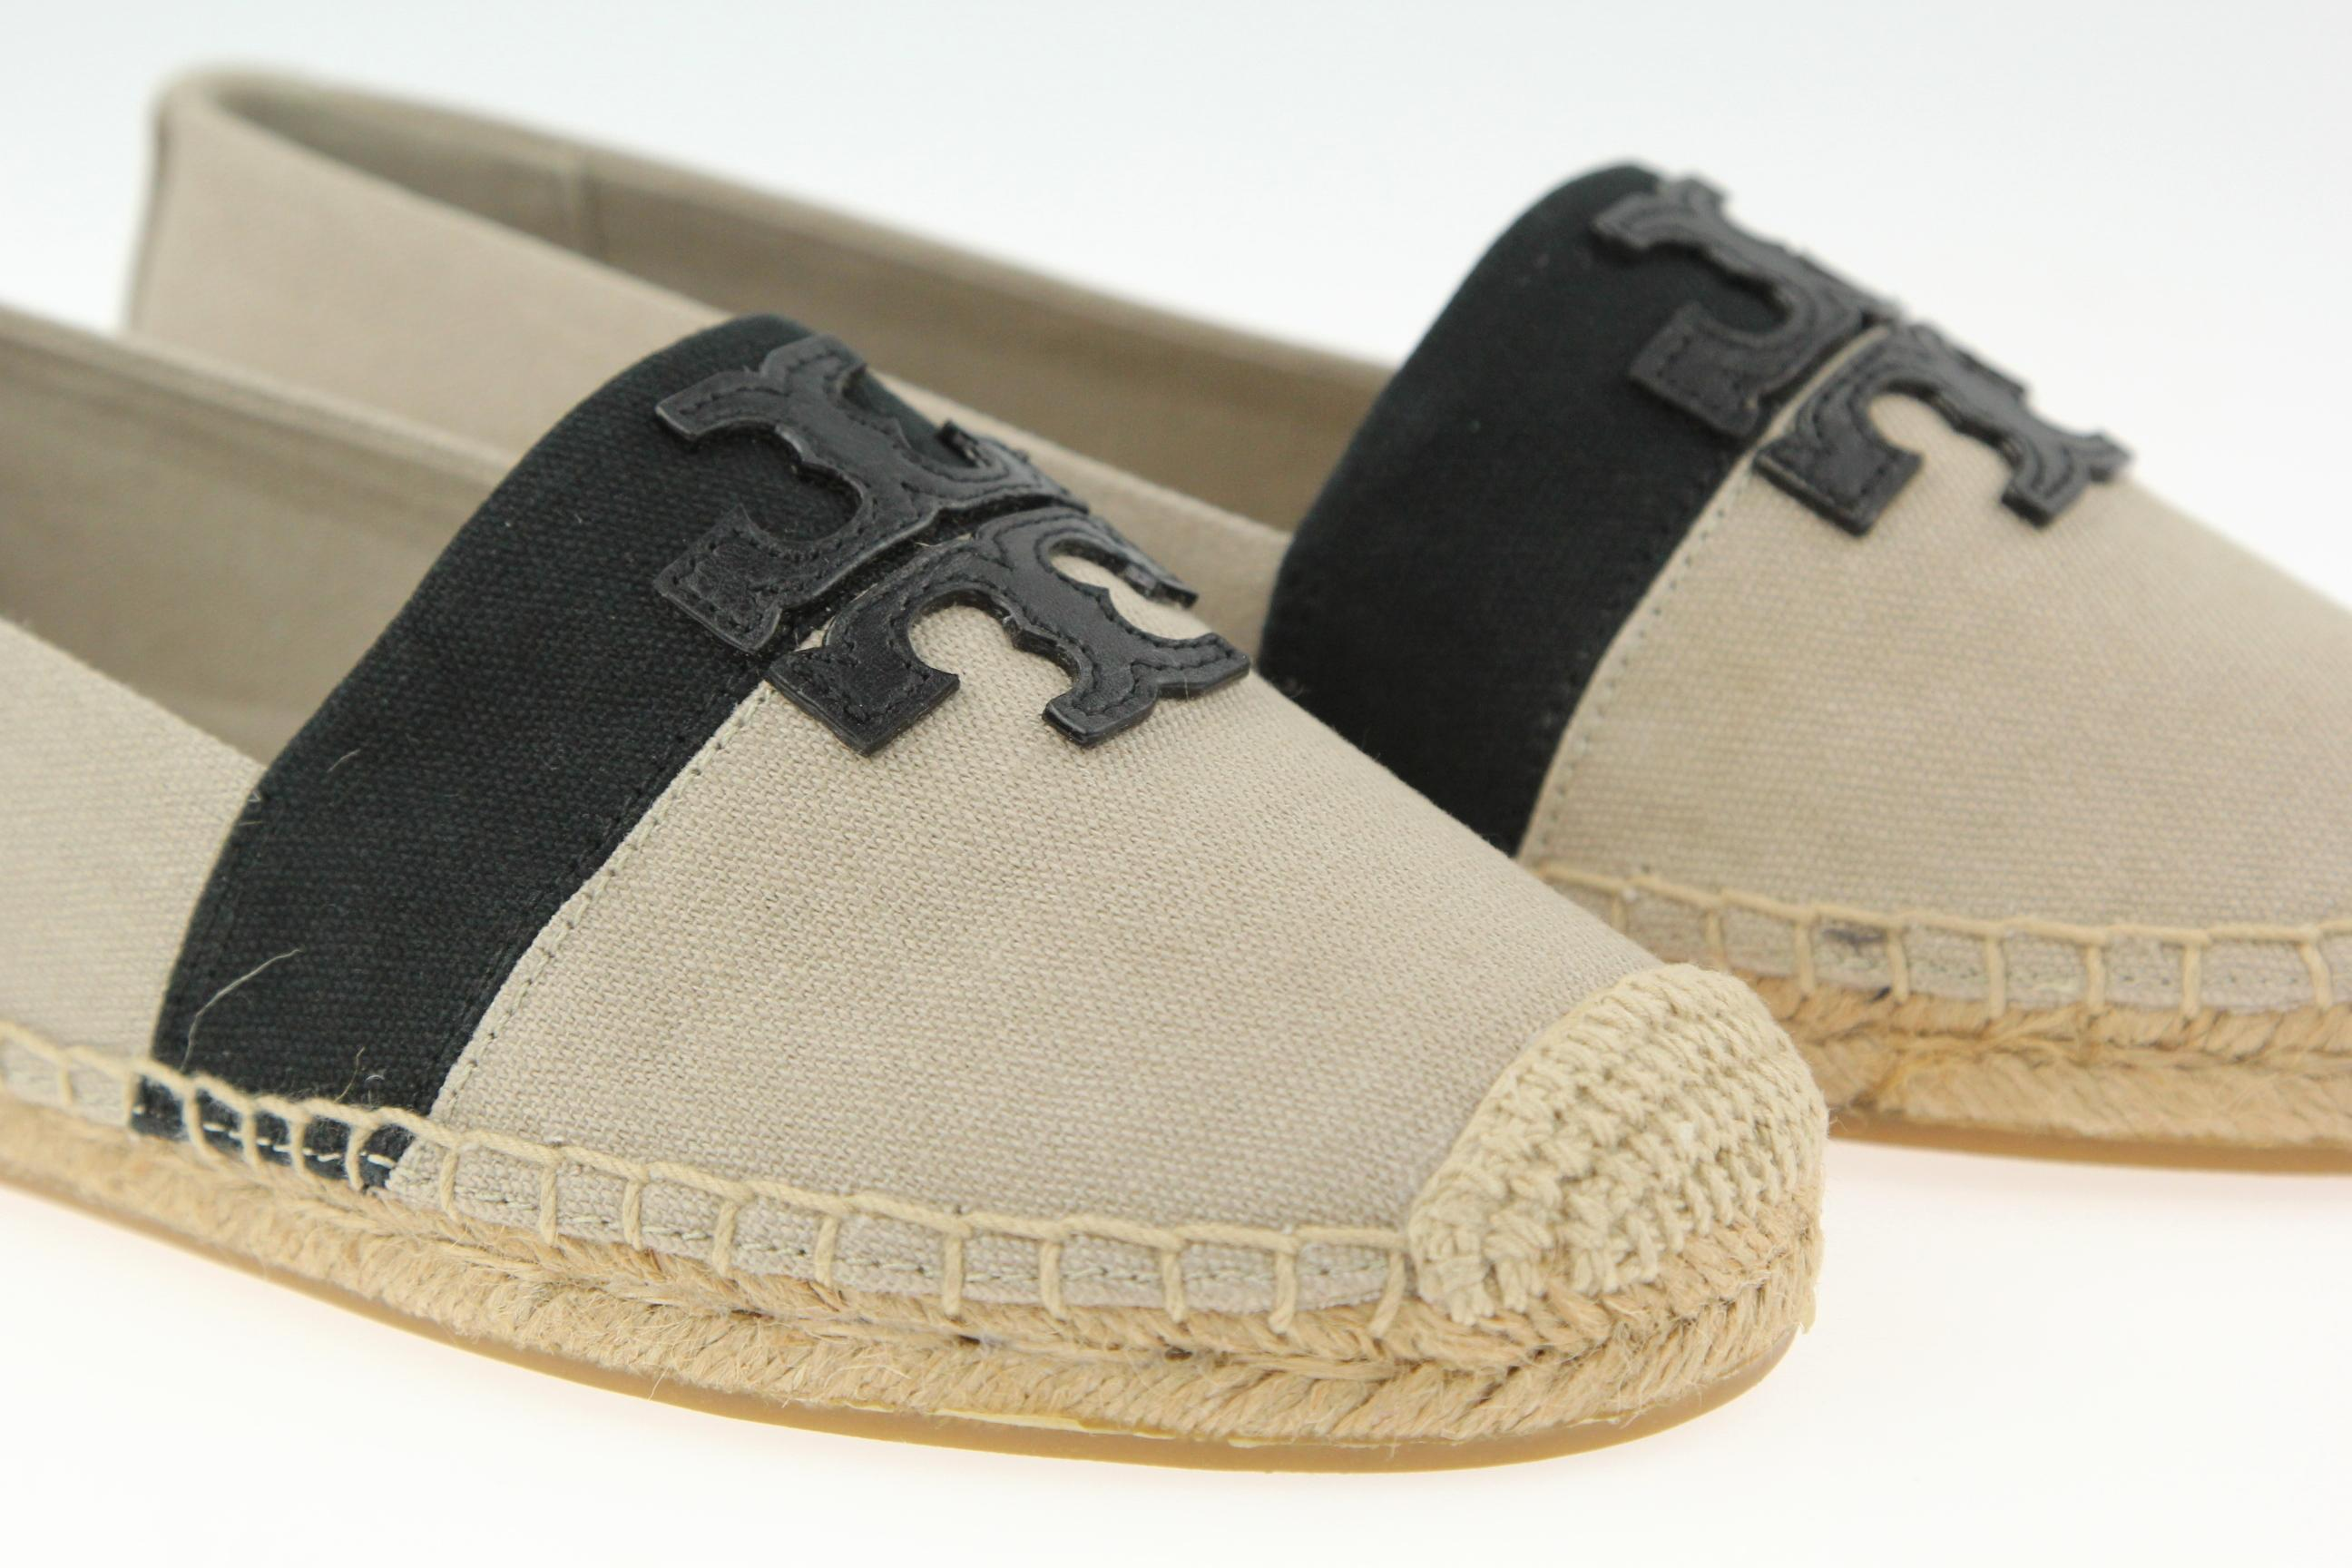 tory burch beige weston toile toile toile espadrilles apparteHommes ts ordinaires (taille us 7 m, b) 23fc4c